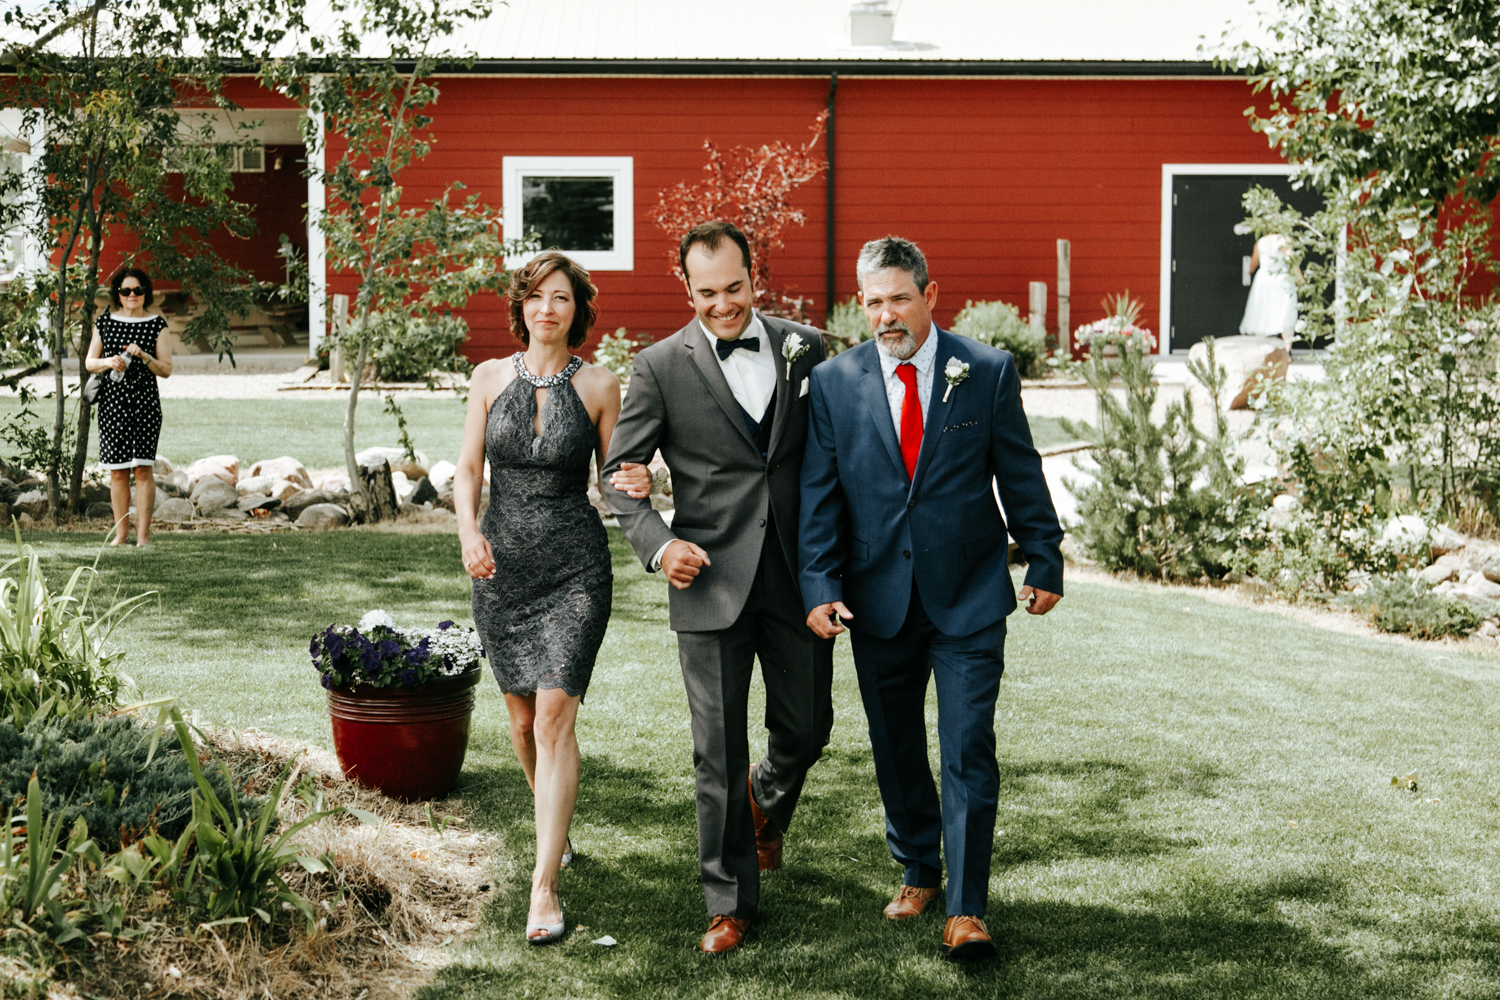 lethbridge-photographer-readymade-community-centre-wedding-coaldale-bailey-joel-picture-image-photo-3.jpg